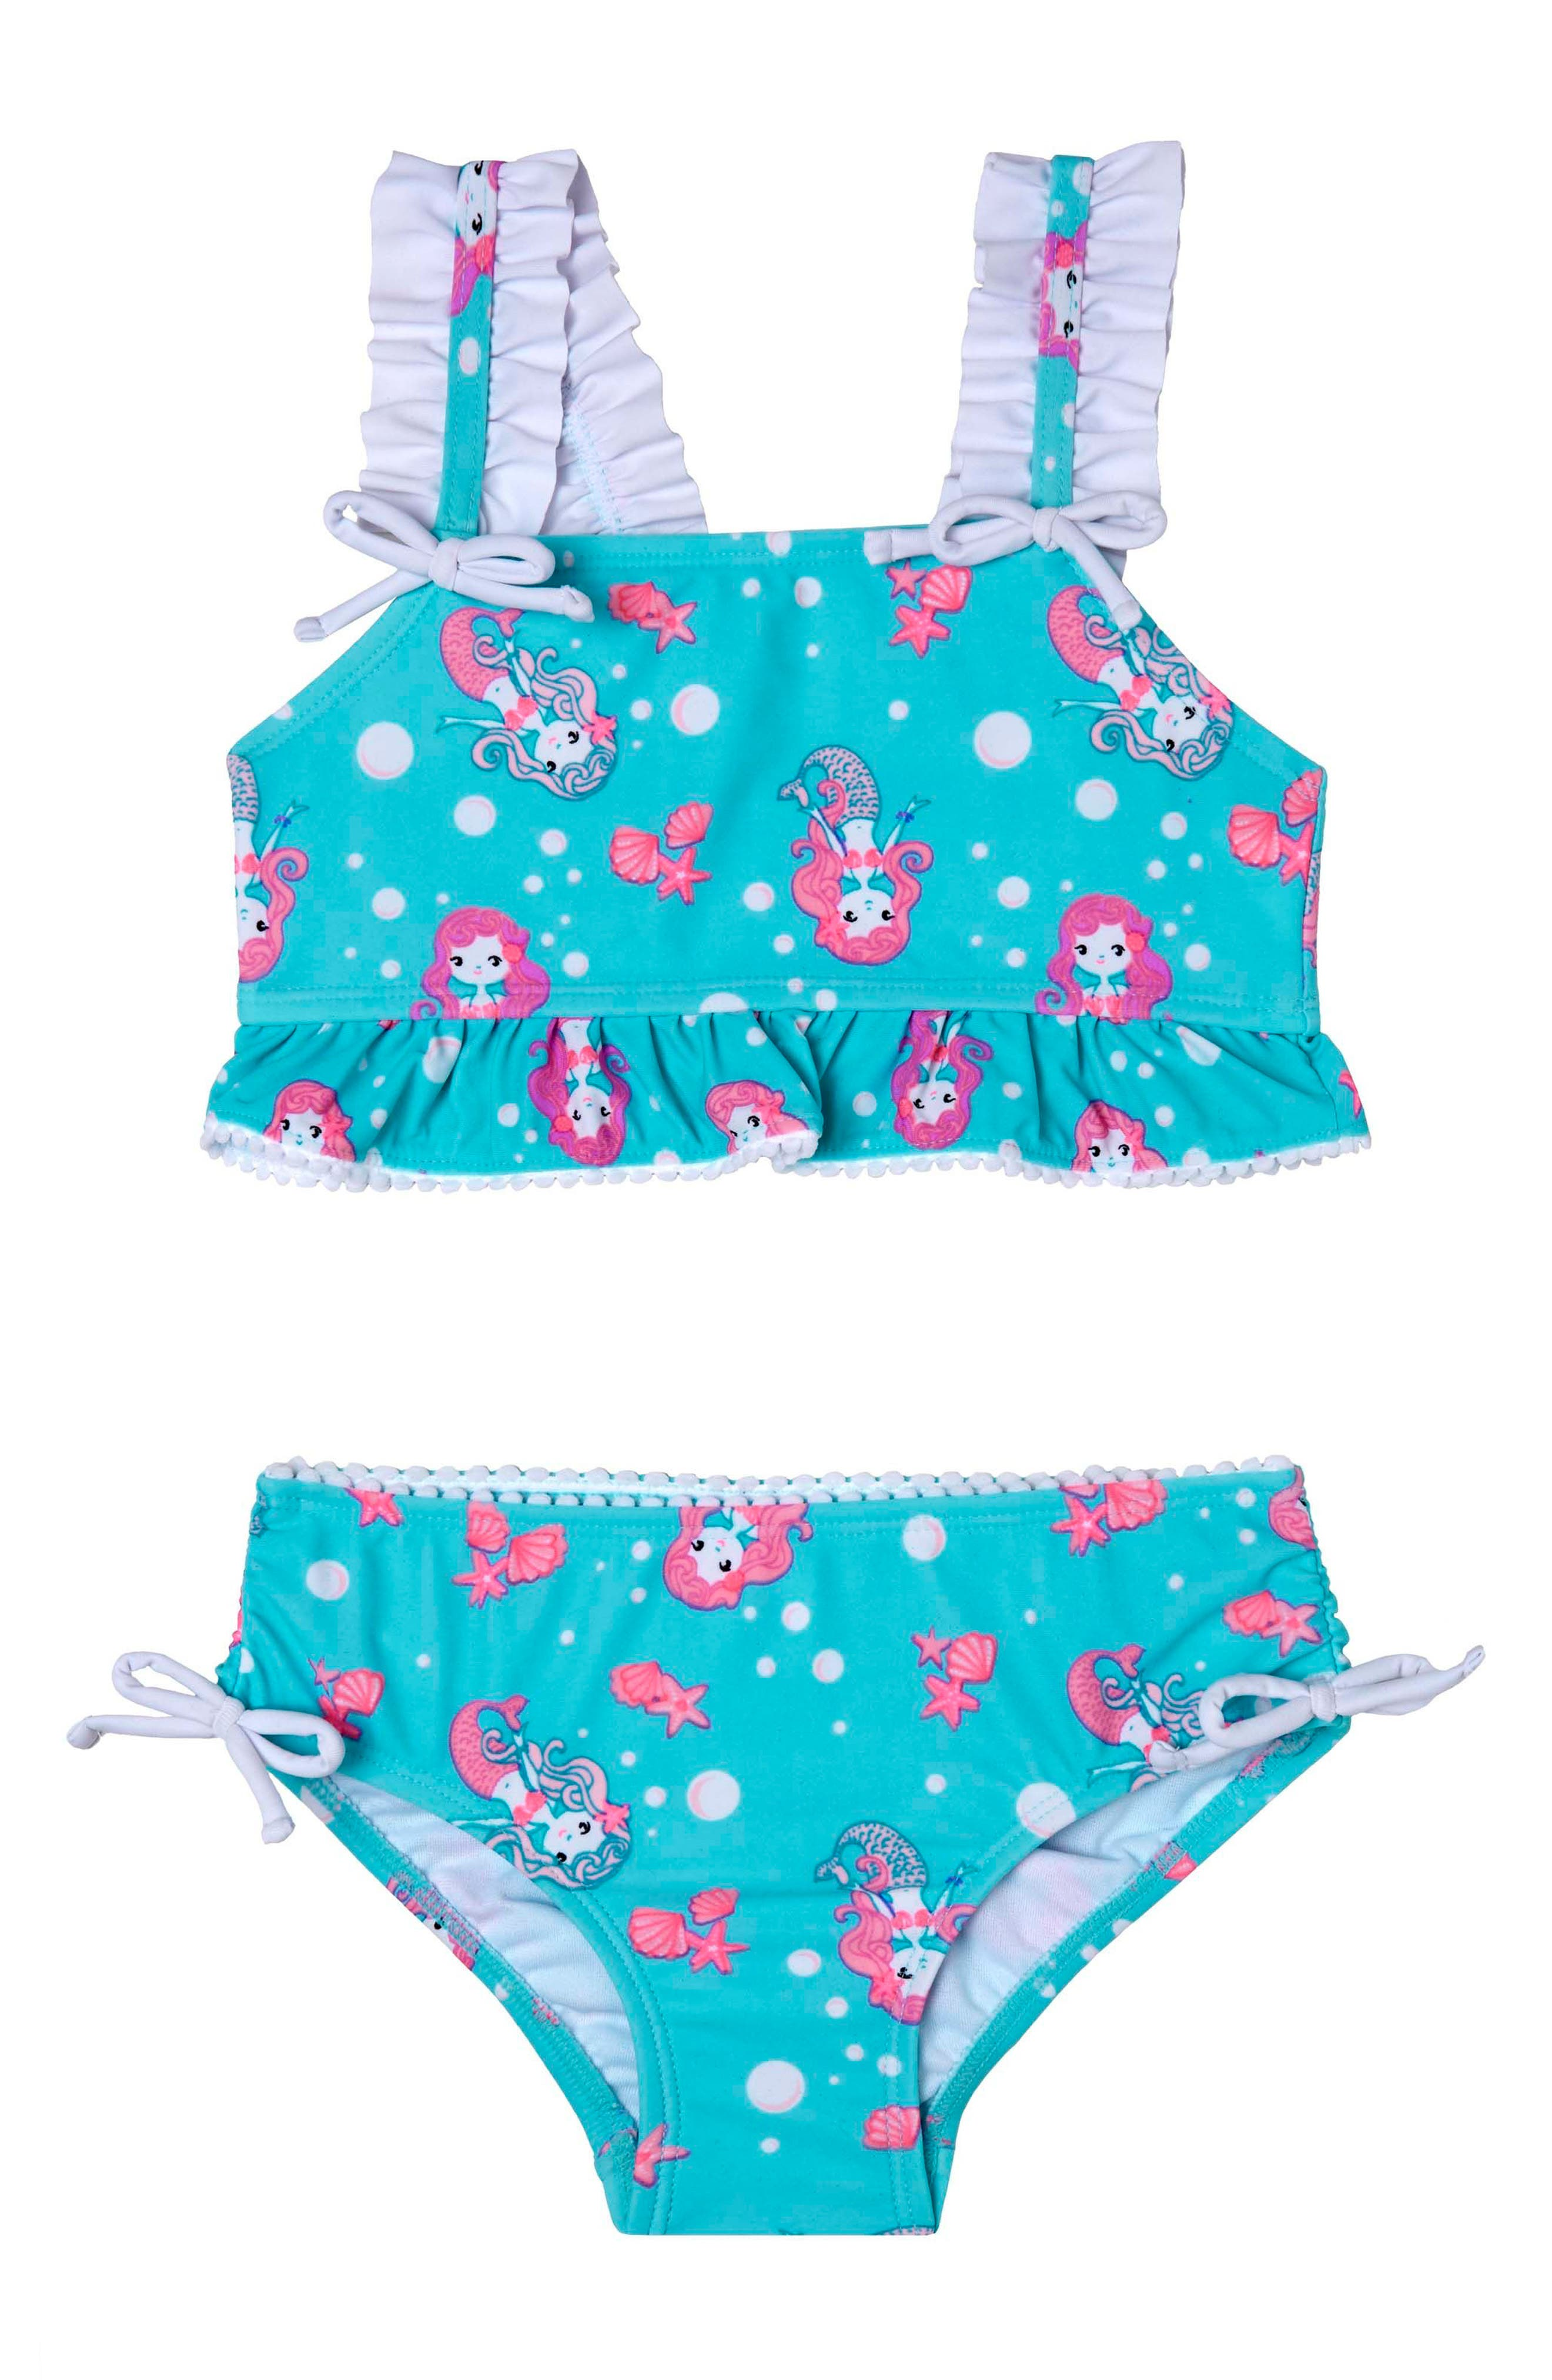 Alternate Image 1 Selected - Hula Star Mermaid Crush Two-Piece Swimsuit (Toddler Girls & Little Girls)